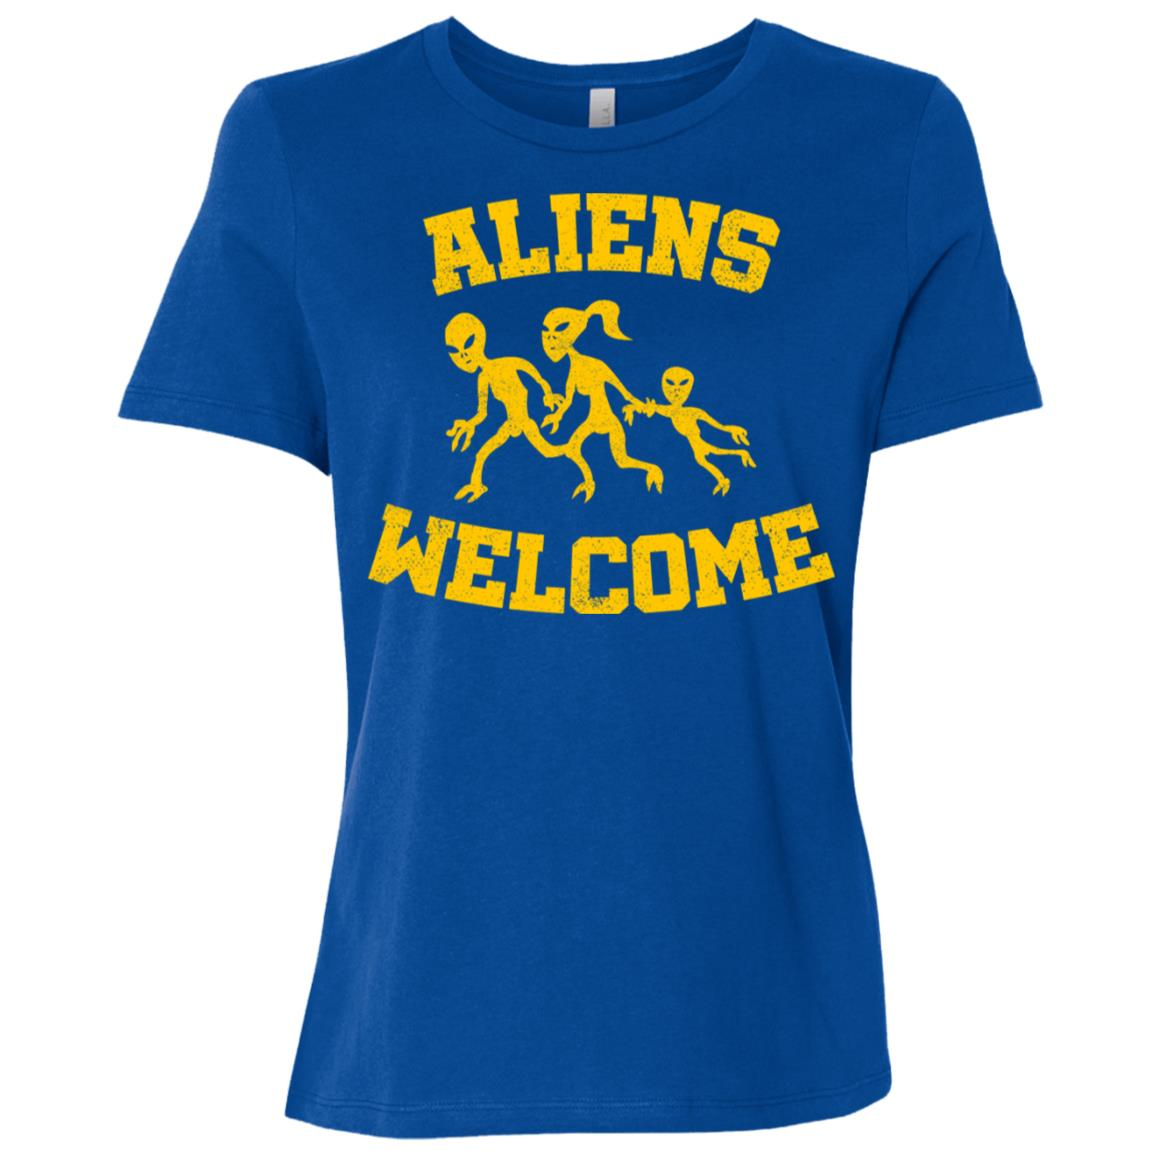 Aliens welcome funny alien and extraterrestrial ls Women Short Sleeve T-Shirt